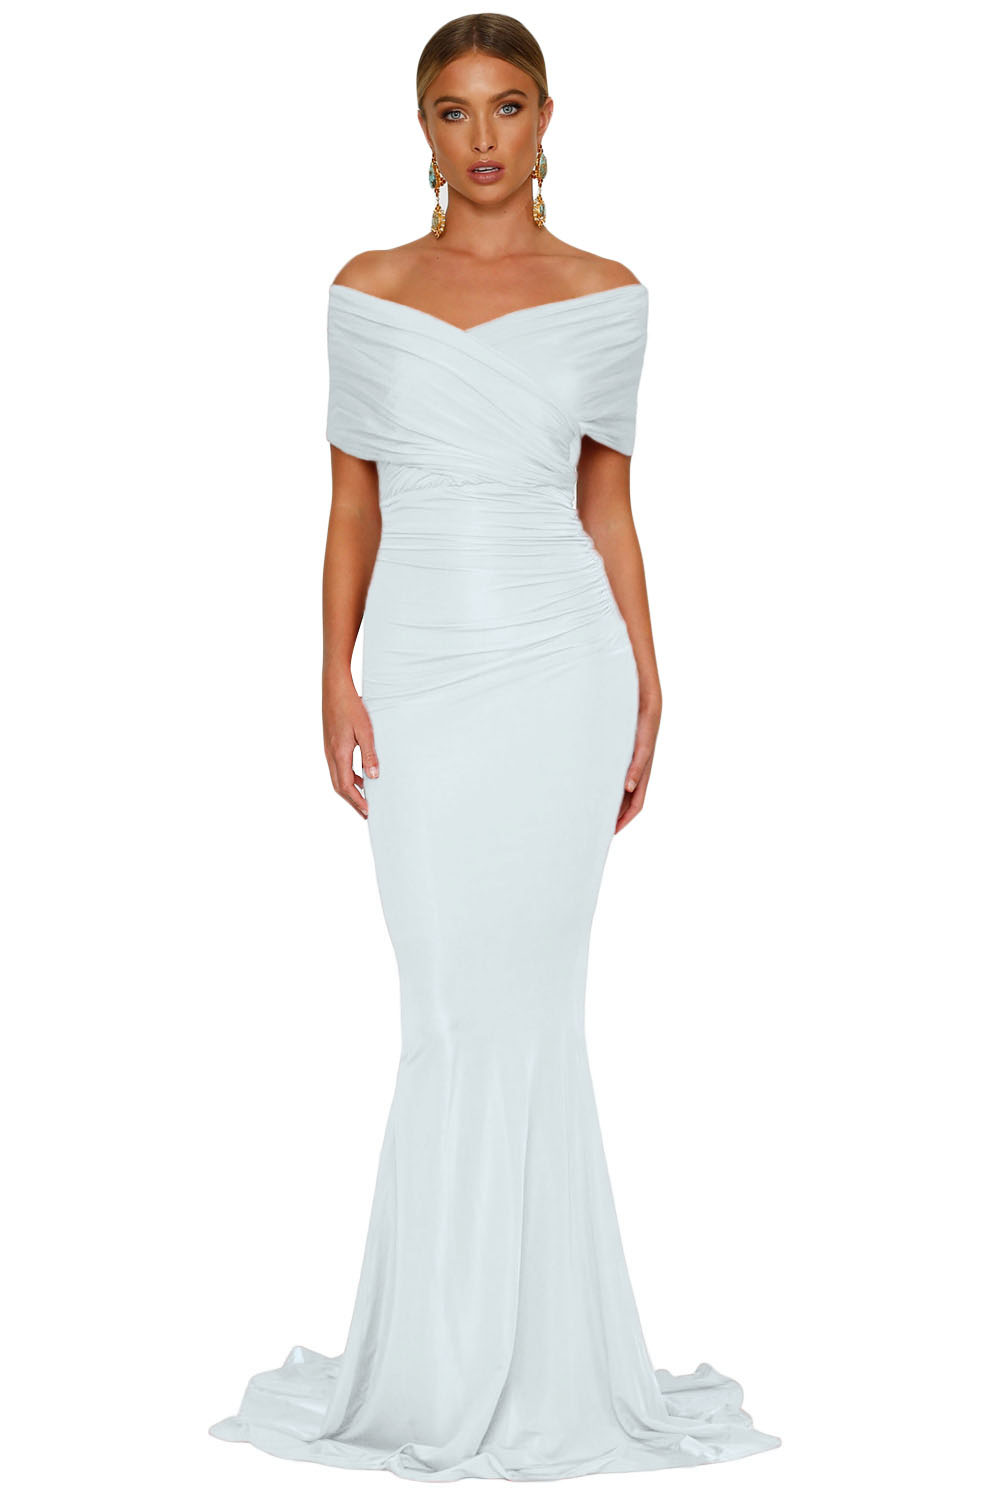 f5bcfd7557f White Off-shoulder Mermaid Wedding Party Gown – Charming Wear